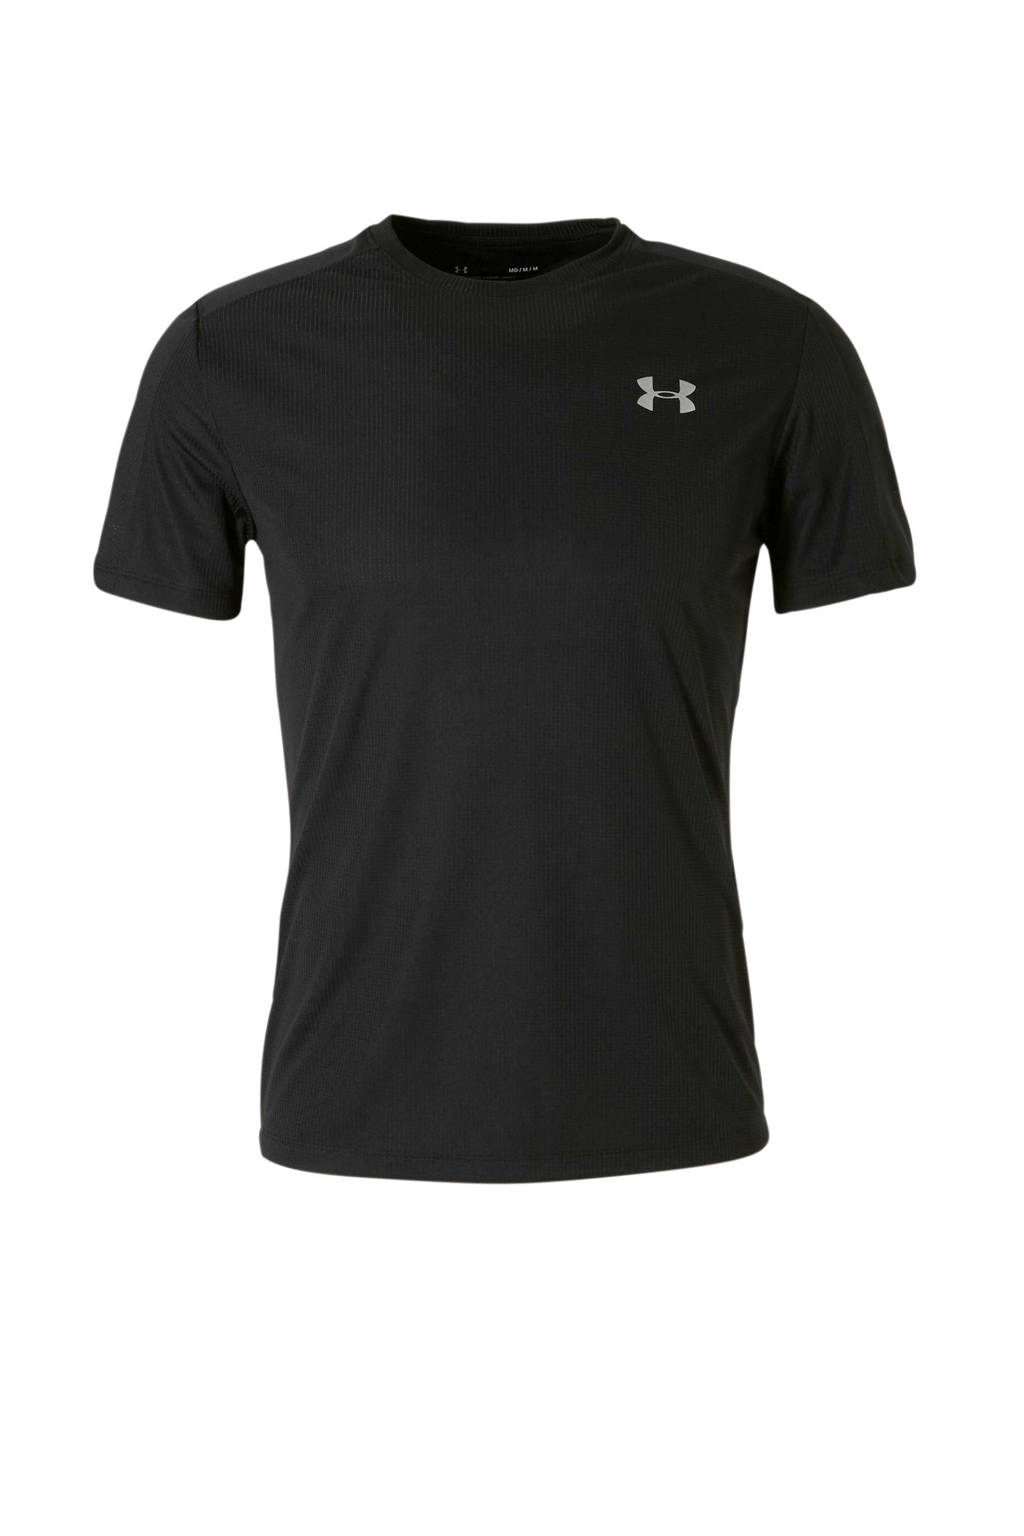 Under Armour   hardloop T-shirt zwart, Zwart